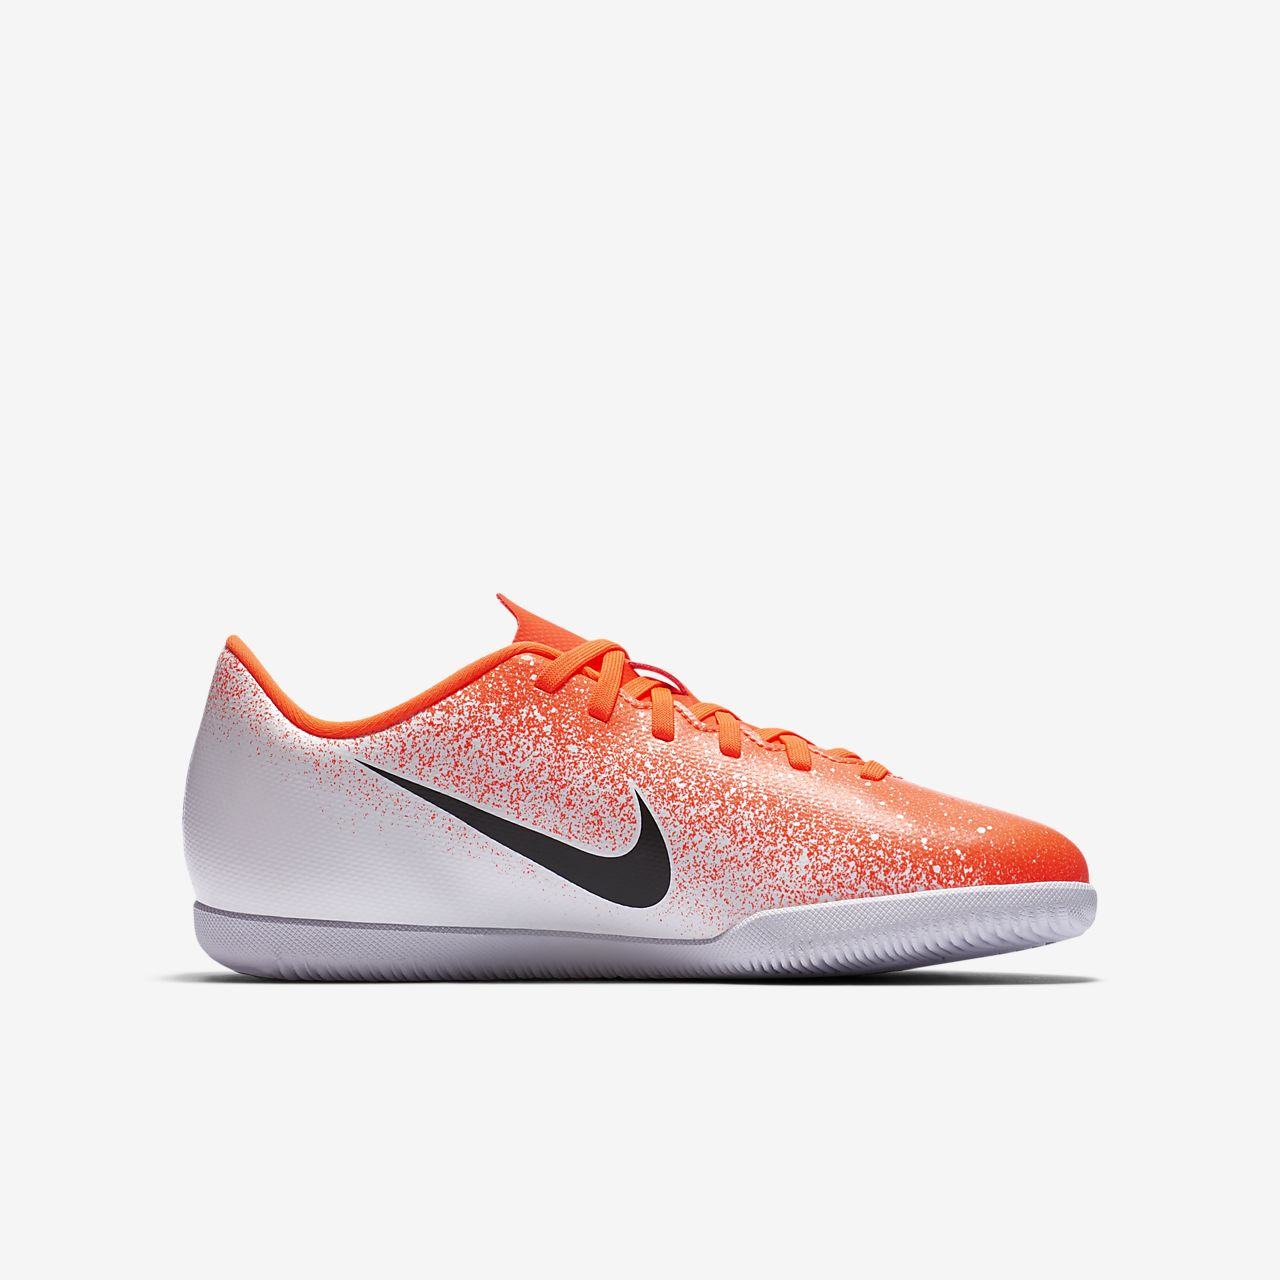 watch ce380 56863 Nike Jr. MercurialX Vapor XII Club IC Younger/Older Kids' Indoor/Court  Football Shoe